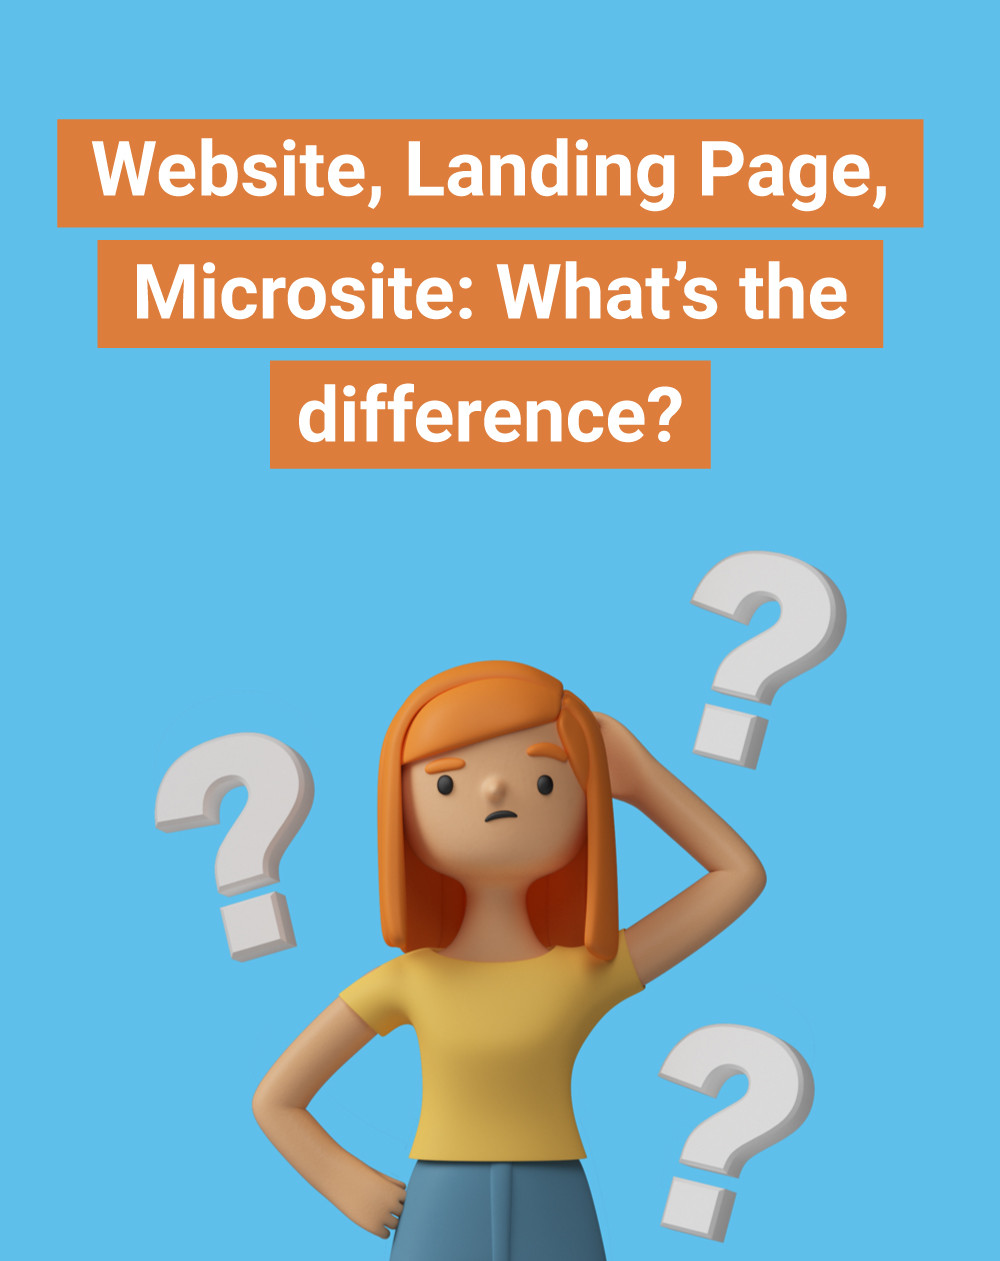 Website, Landing Page, Microsite: What's the difference?